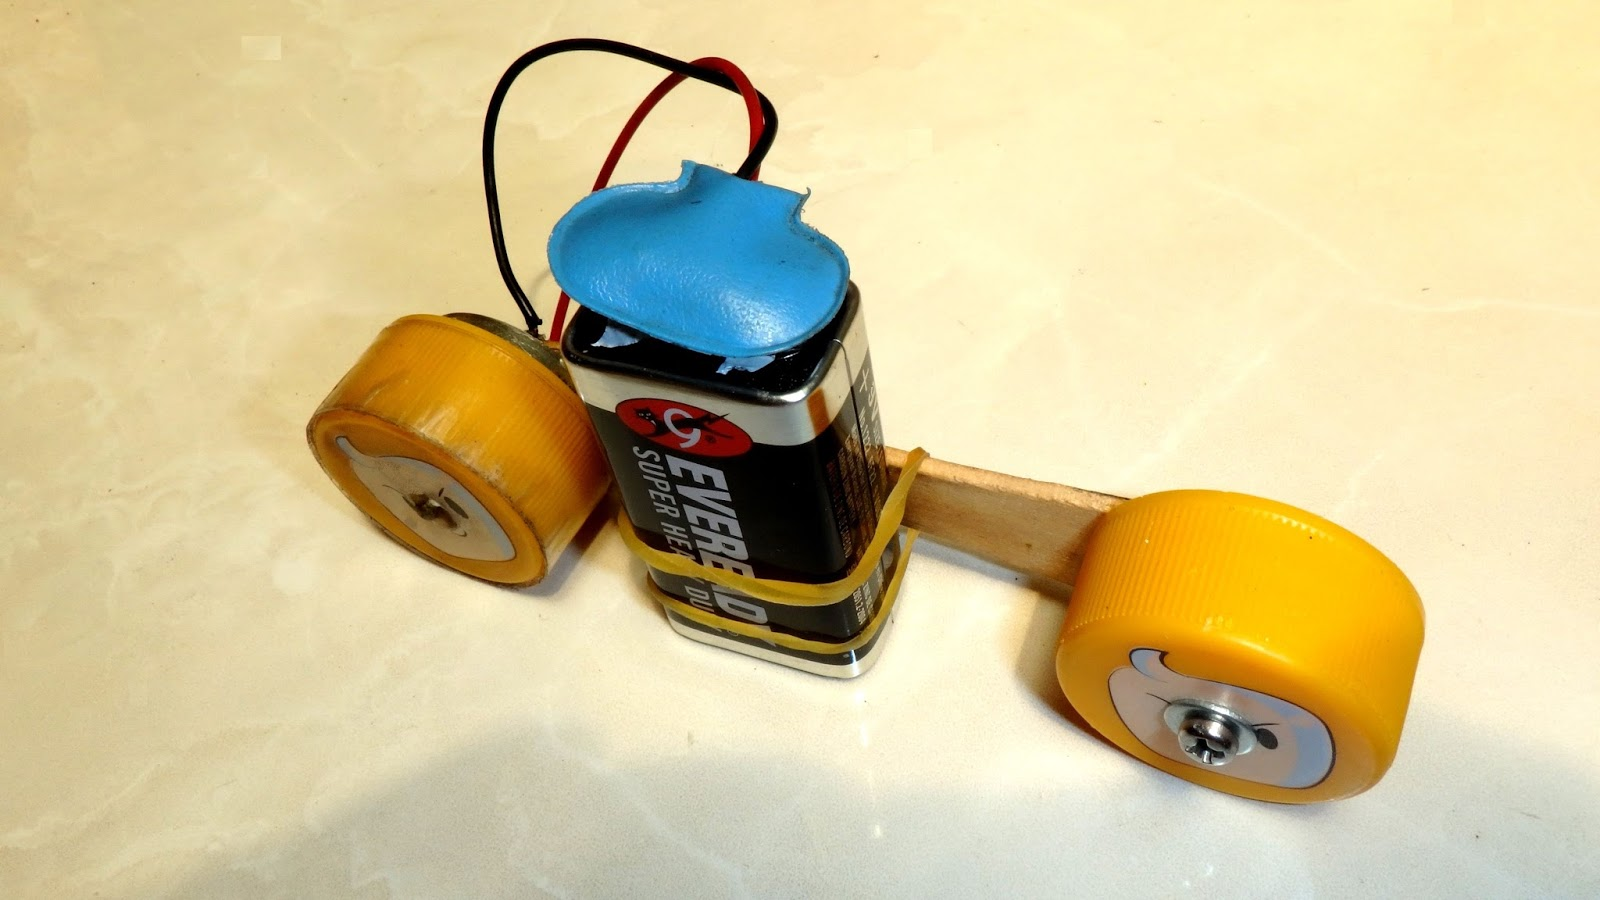 February 2018 Kontramur Motorcycle Toy Can Be Made Easily At Home With Only Household Material Such As 2x Pieces Of Plastic Bottle Cap Ice Cream Stick 9 Volt Battery